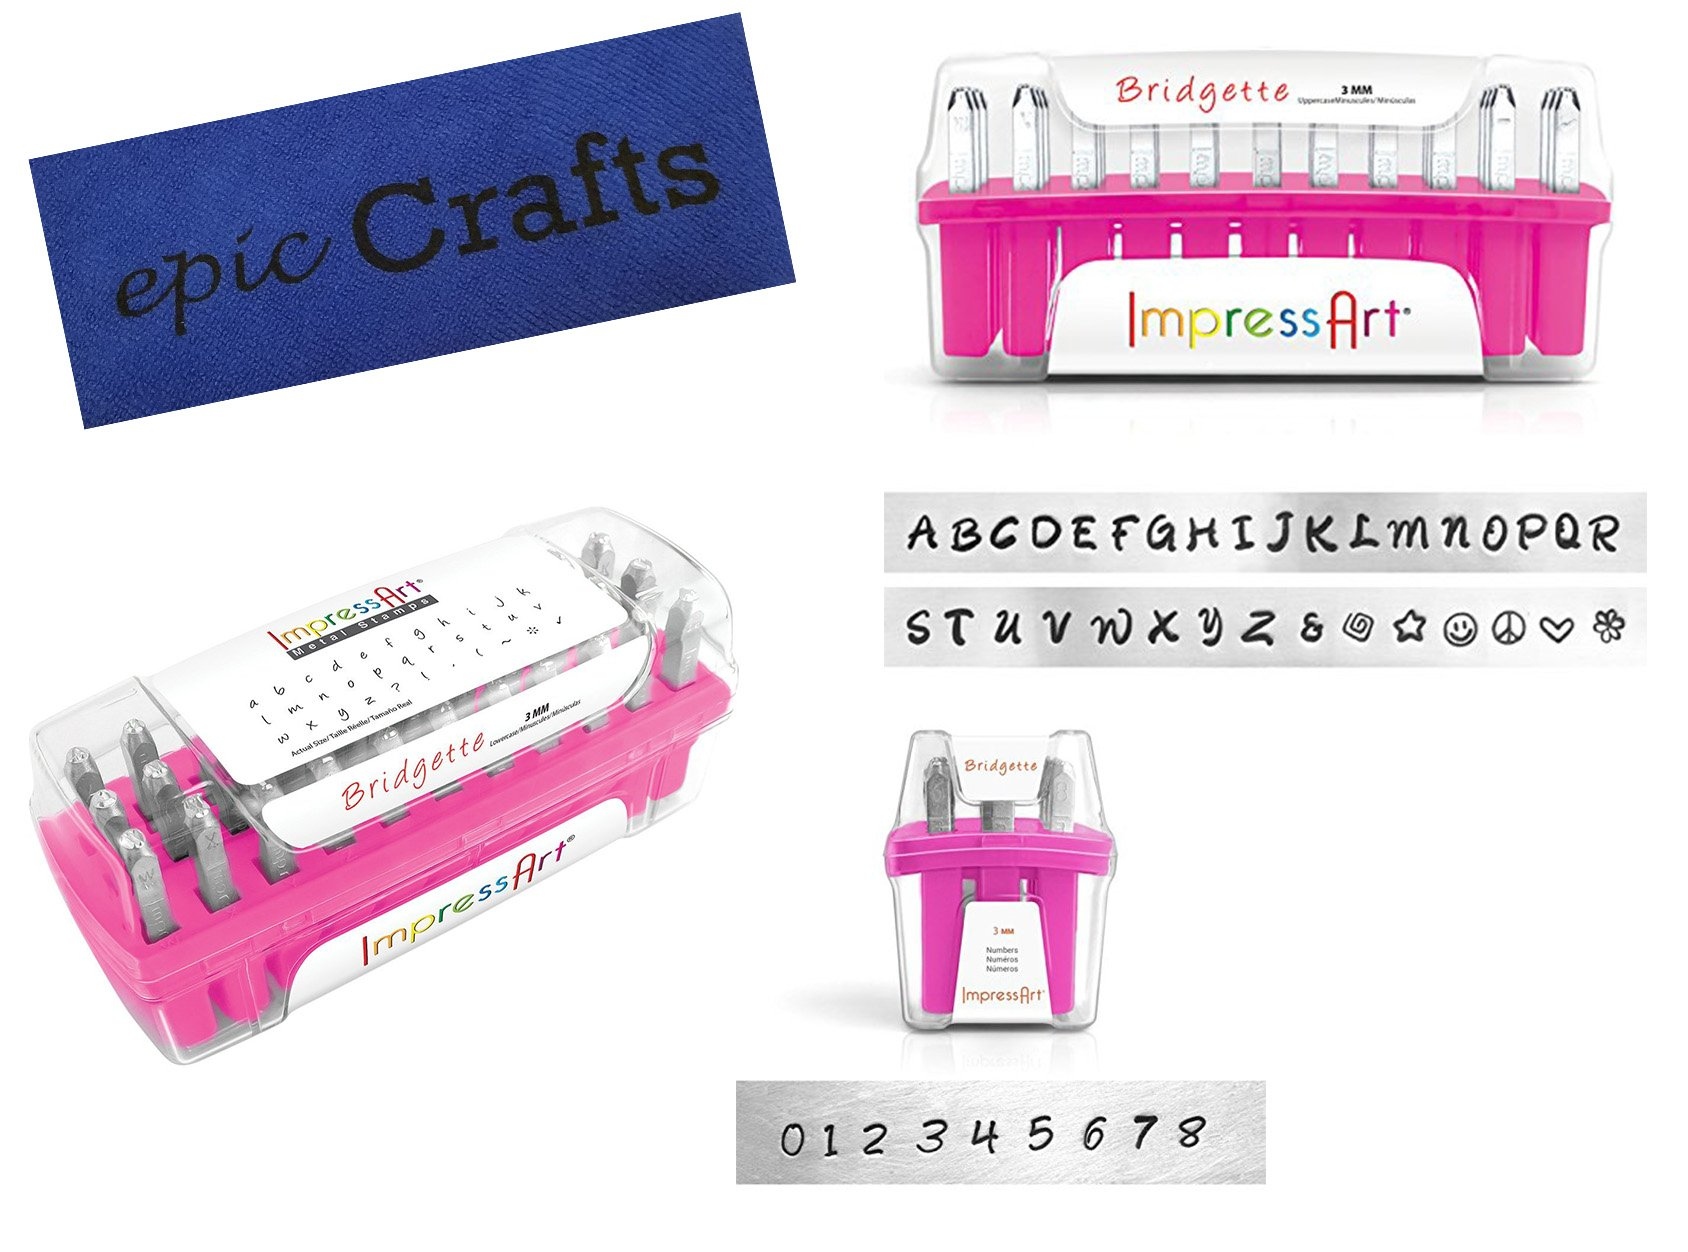 Metal Stamping Kit with Bridgette Lowercase Metal Letter Stamps, 3mm, Bundled with Bridgette Uppercase Letter Metal Stamp Set, Bridgette Number Metal Stamps Set and Epic Crafts Microfiber Cloth